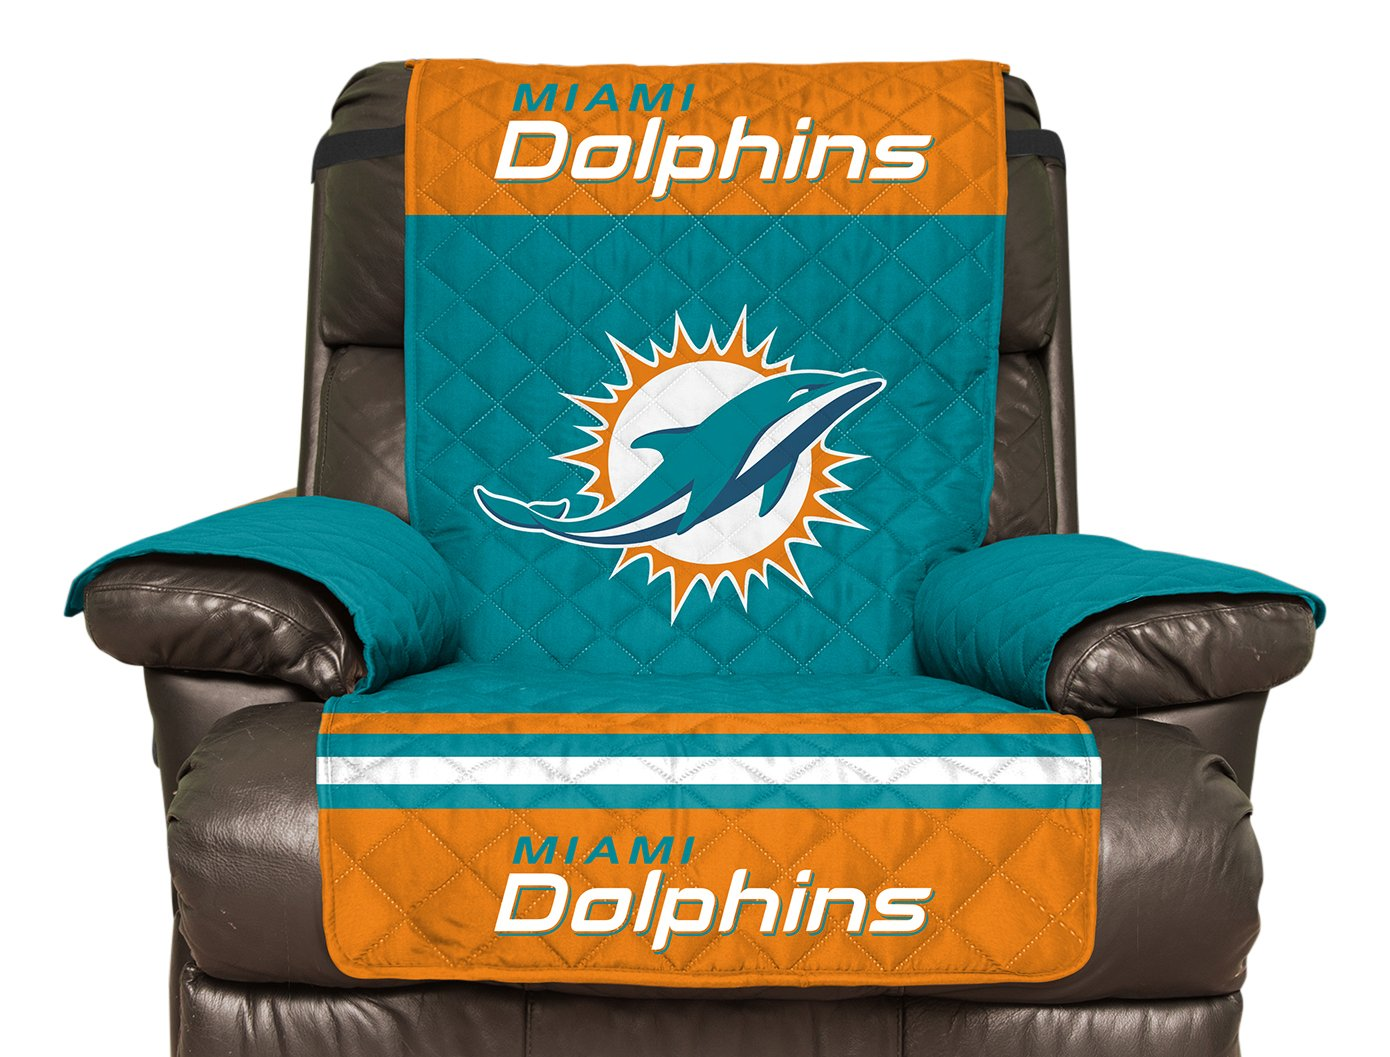 NFL Miami Dolphins Recliner Reversible Furniture Protector with Elastic Straps, 80-inches by 65-inches Pegasus - Sports NFLDOLPHINS-4R